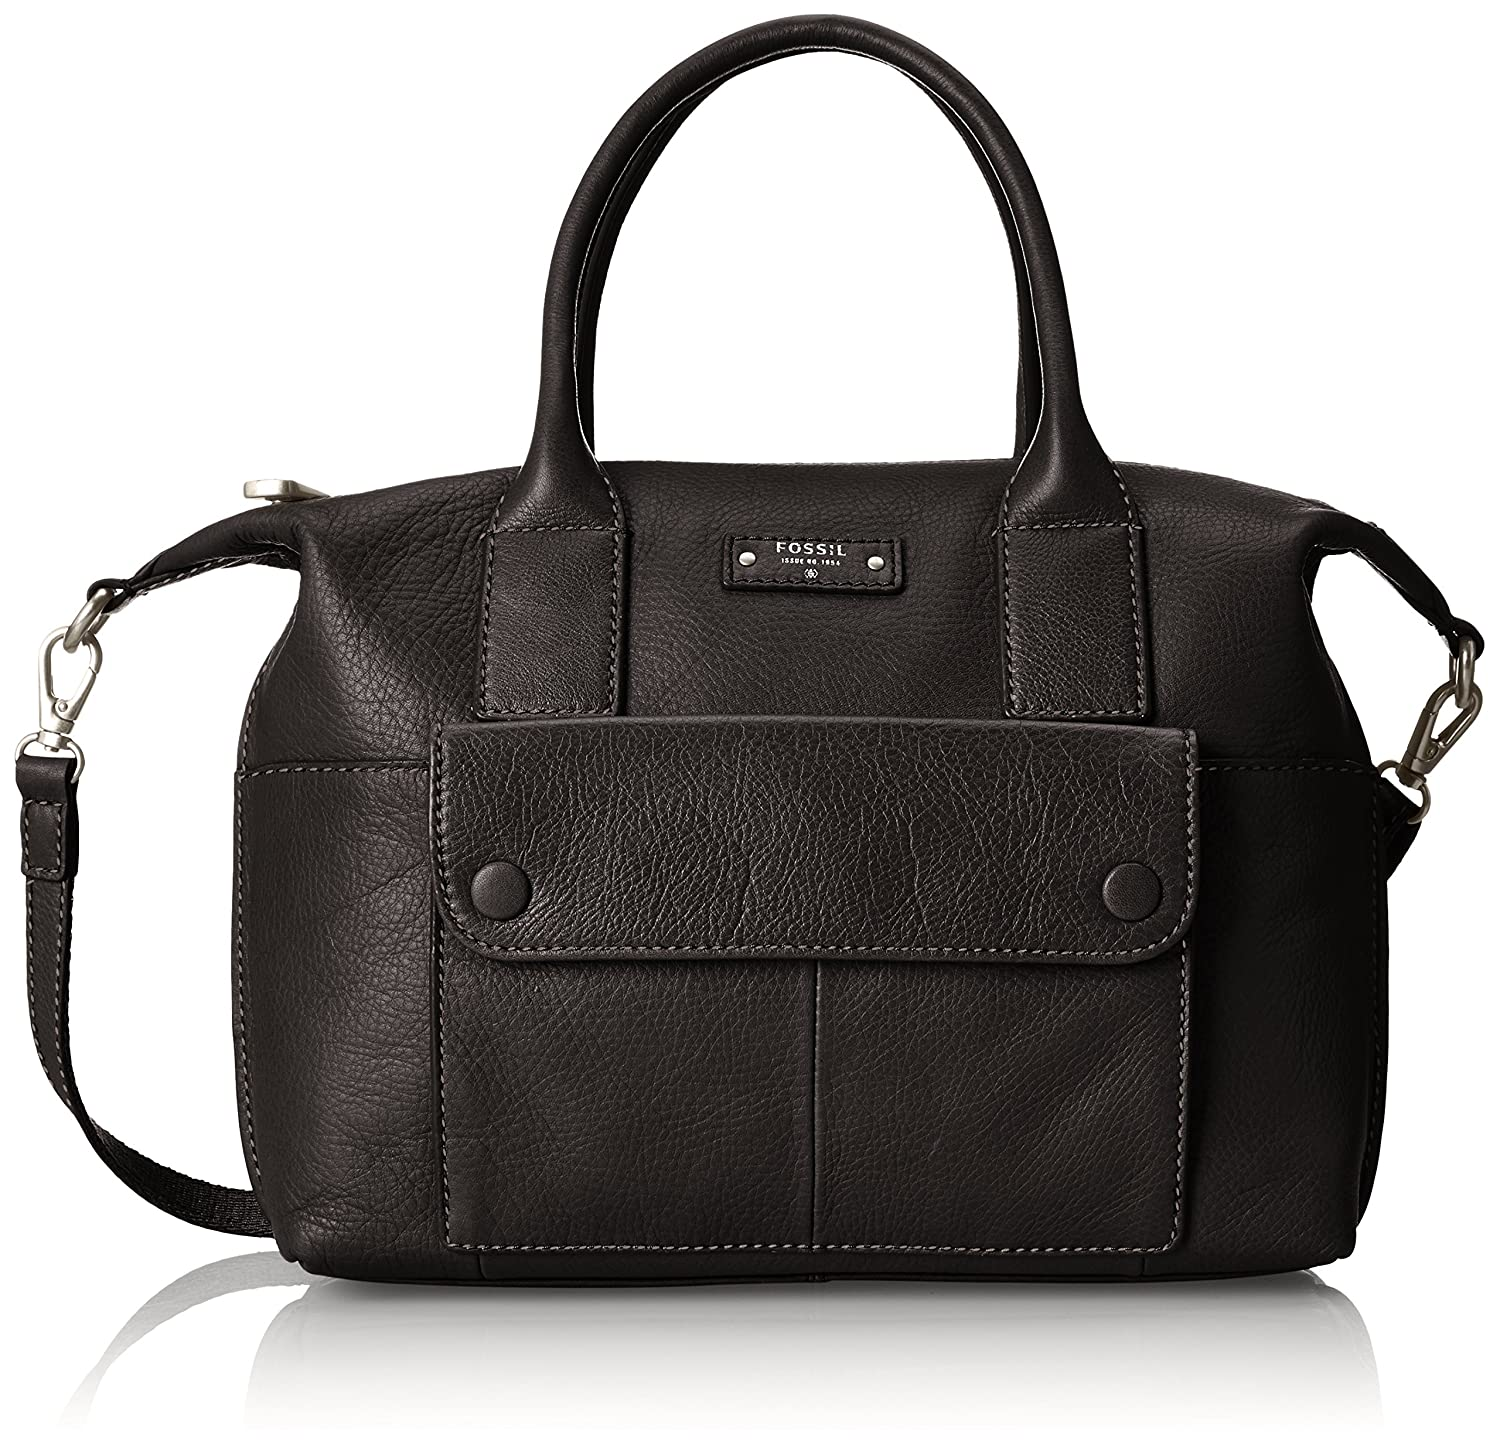 Fossil Blake Satchel, Black, One Size: Handbags: Amazon.com